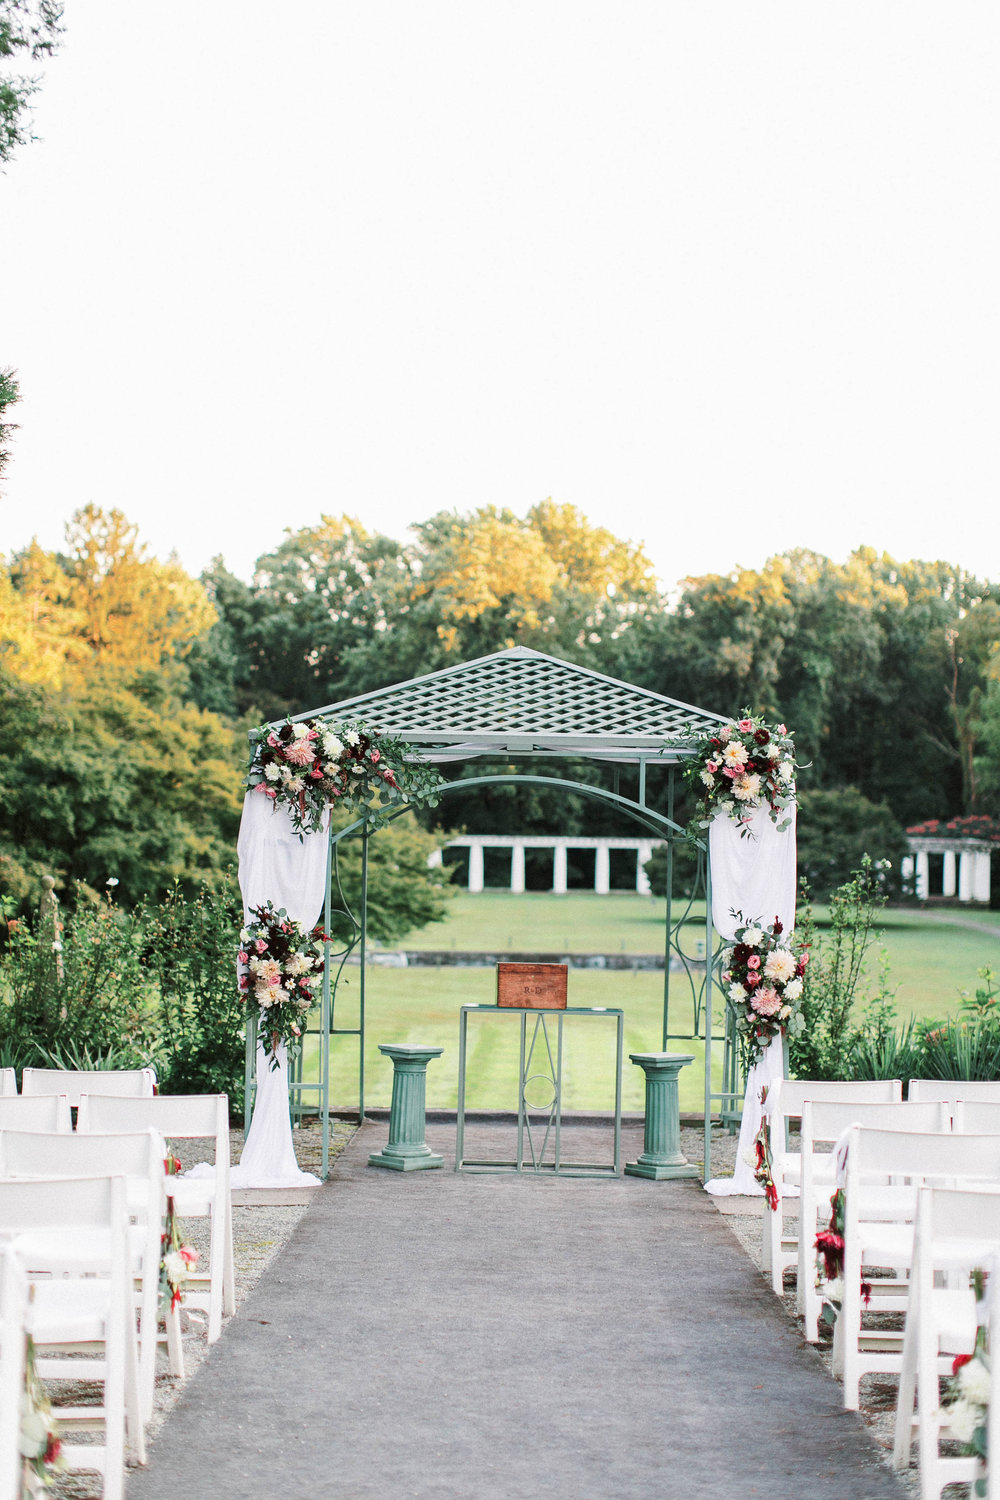 We love how the bunches of flowers tied to the end of the rows add color to the aisle and lead your attention to the focal point at the arbor.